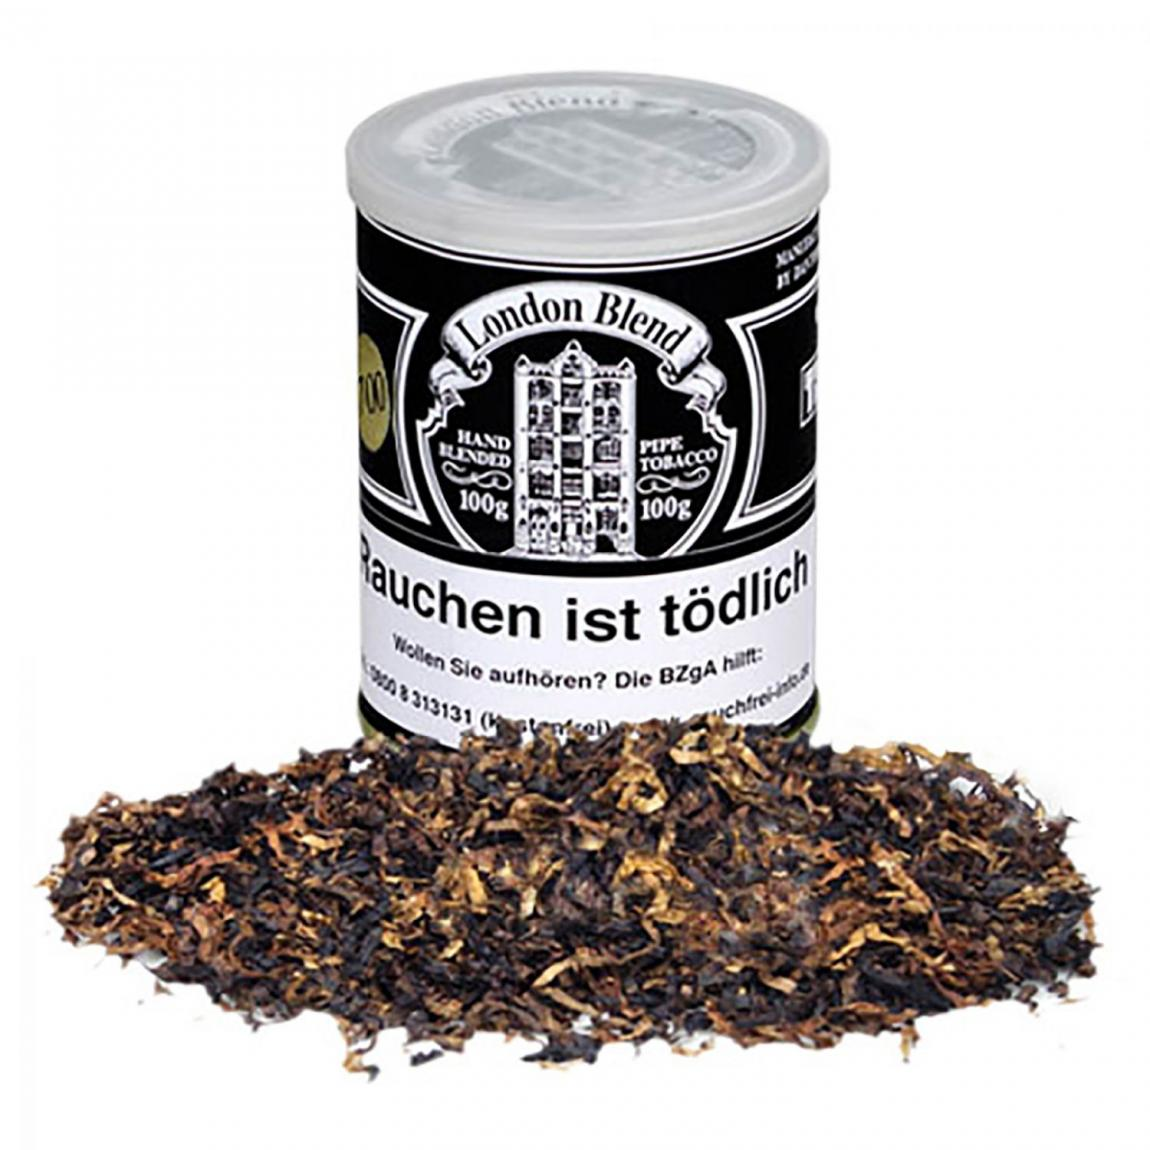 Timm London Blend No. 700 250g Sparpack